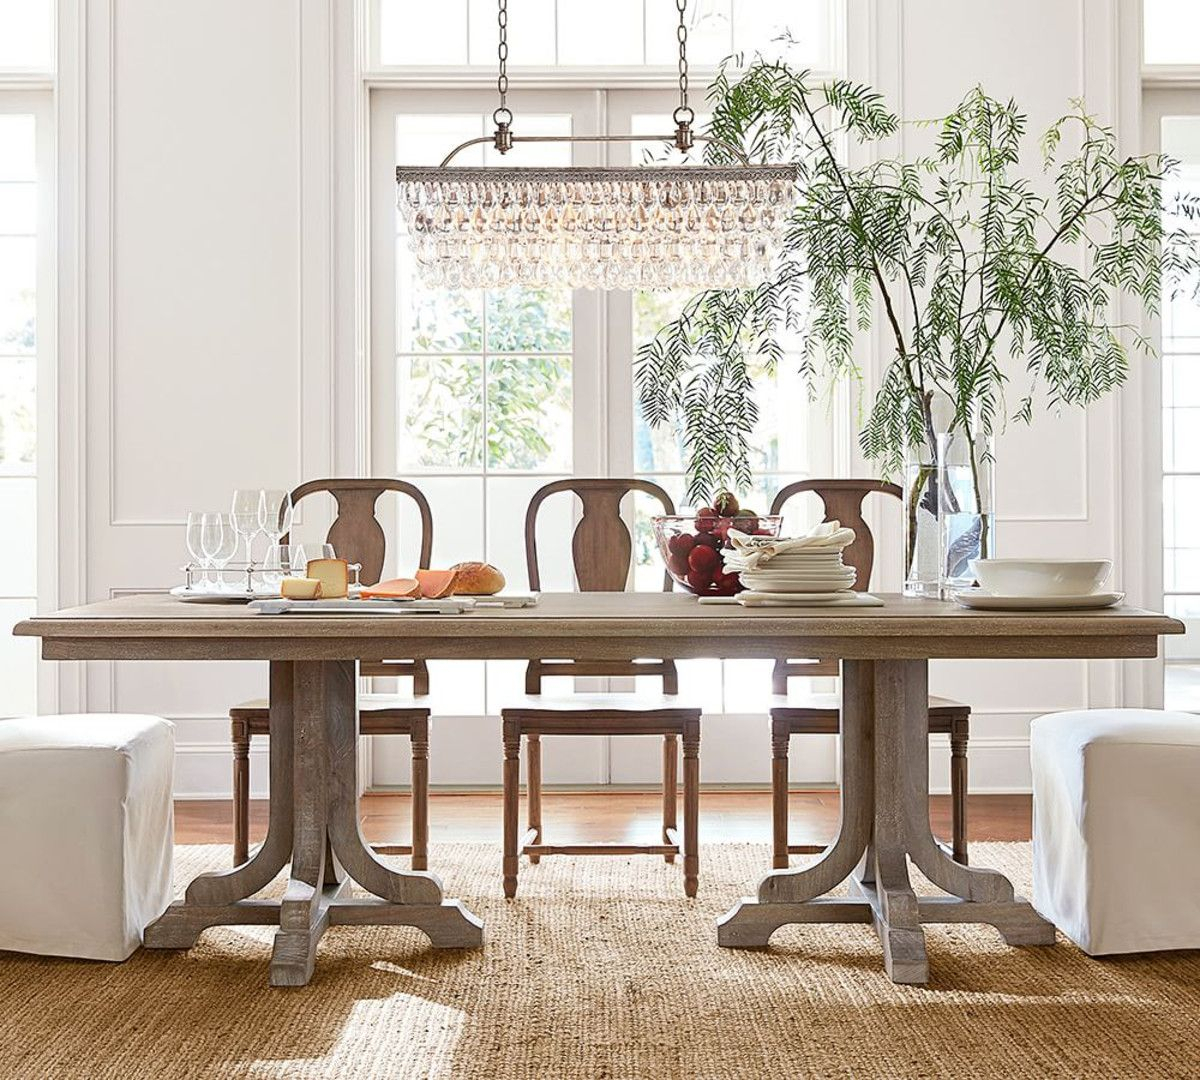 Clarissa Glass Drop Rectangular Chandelier | Home | Dining For Most Recent Seadrift Banks Extending Dining Tables (View 14 of 25)